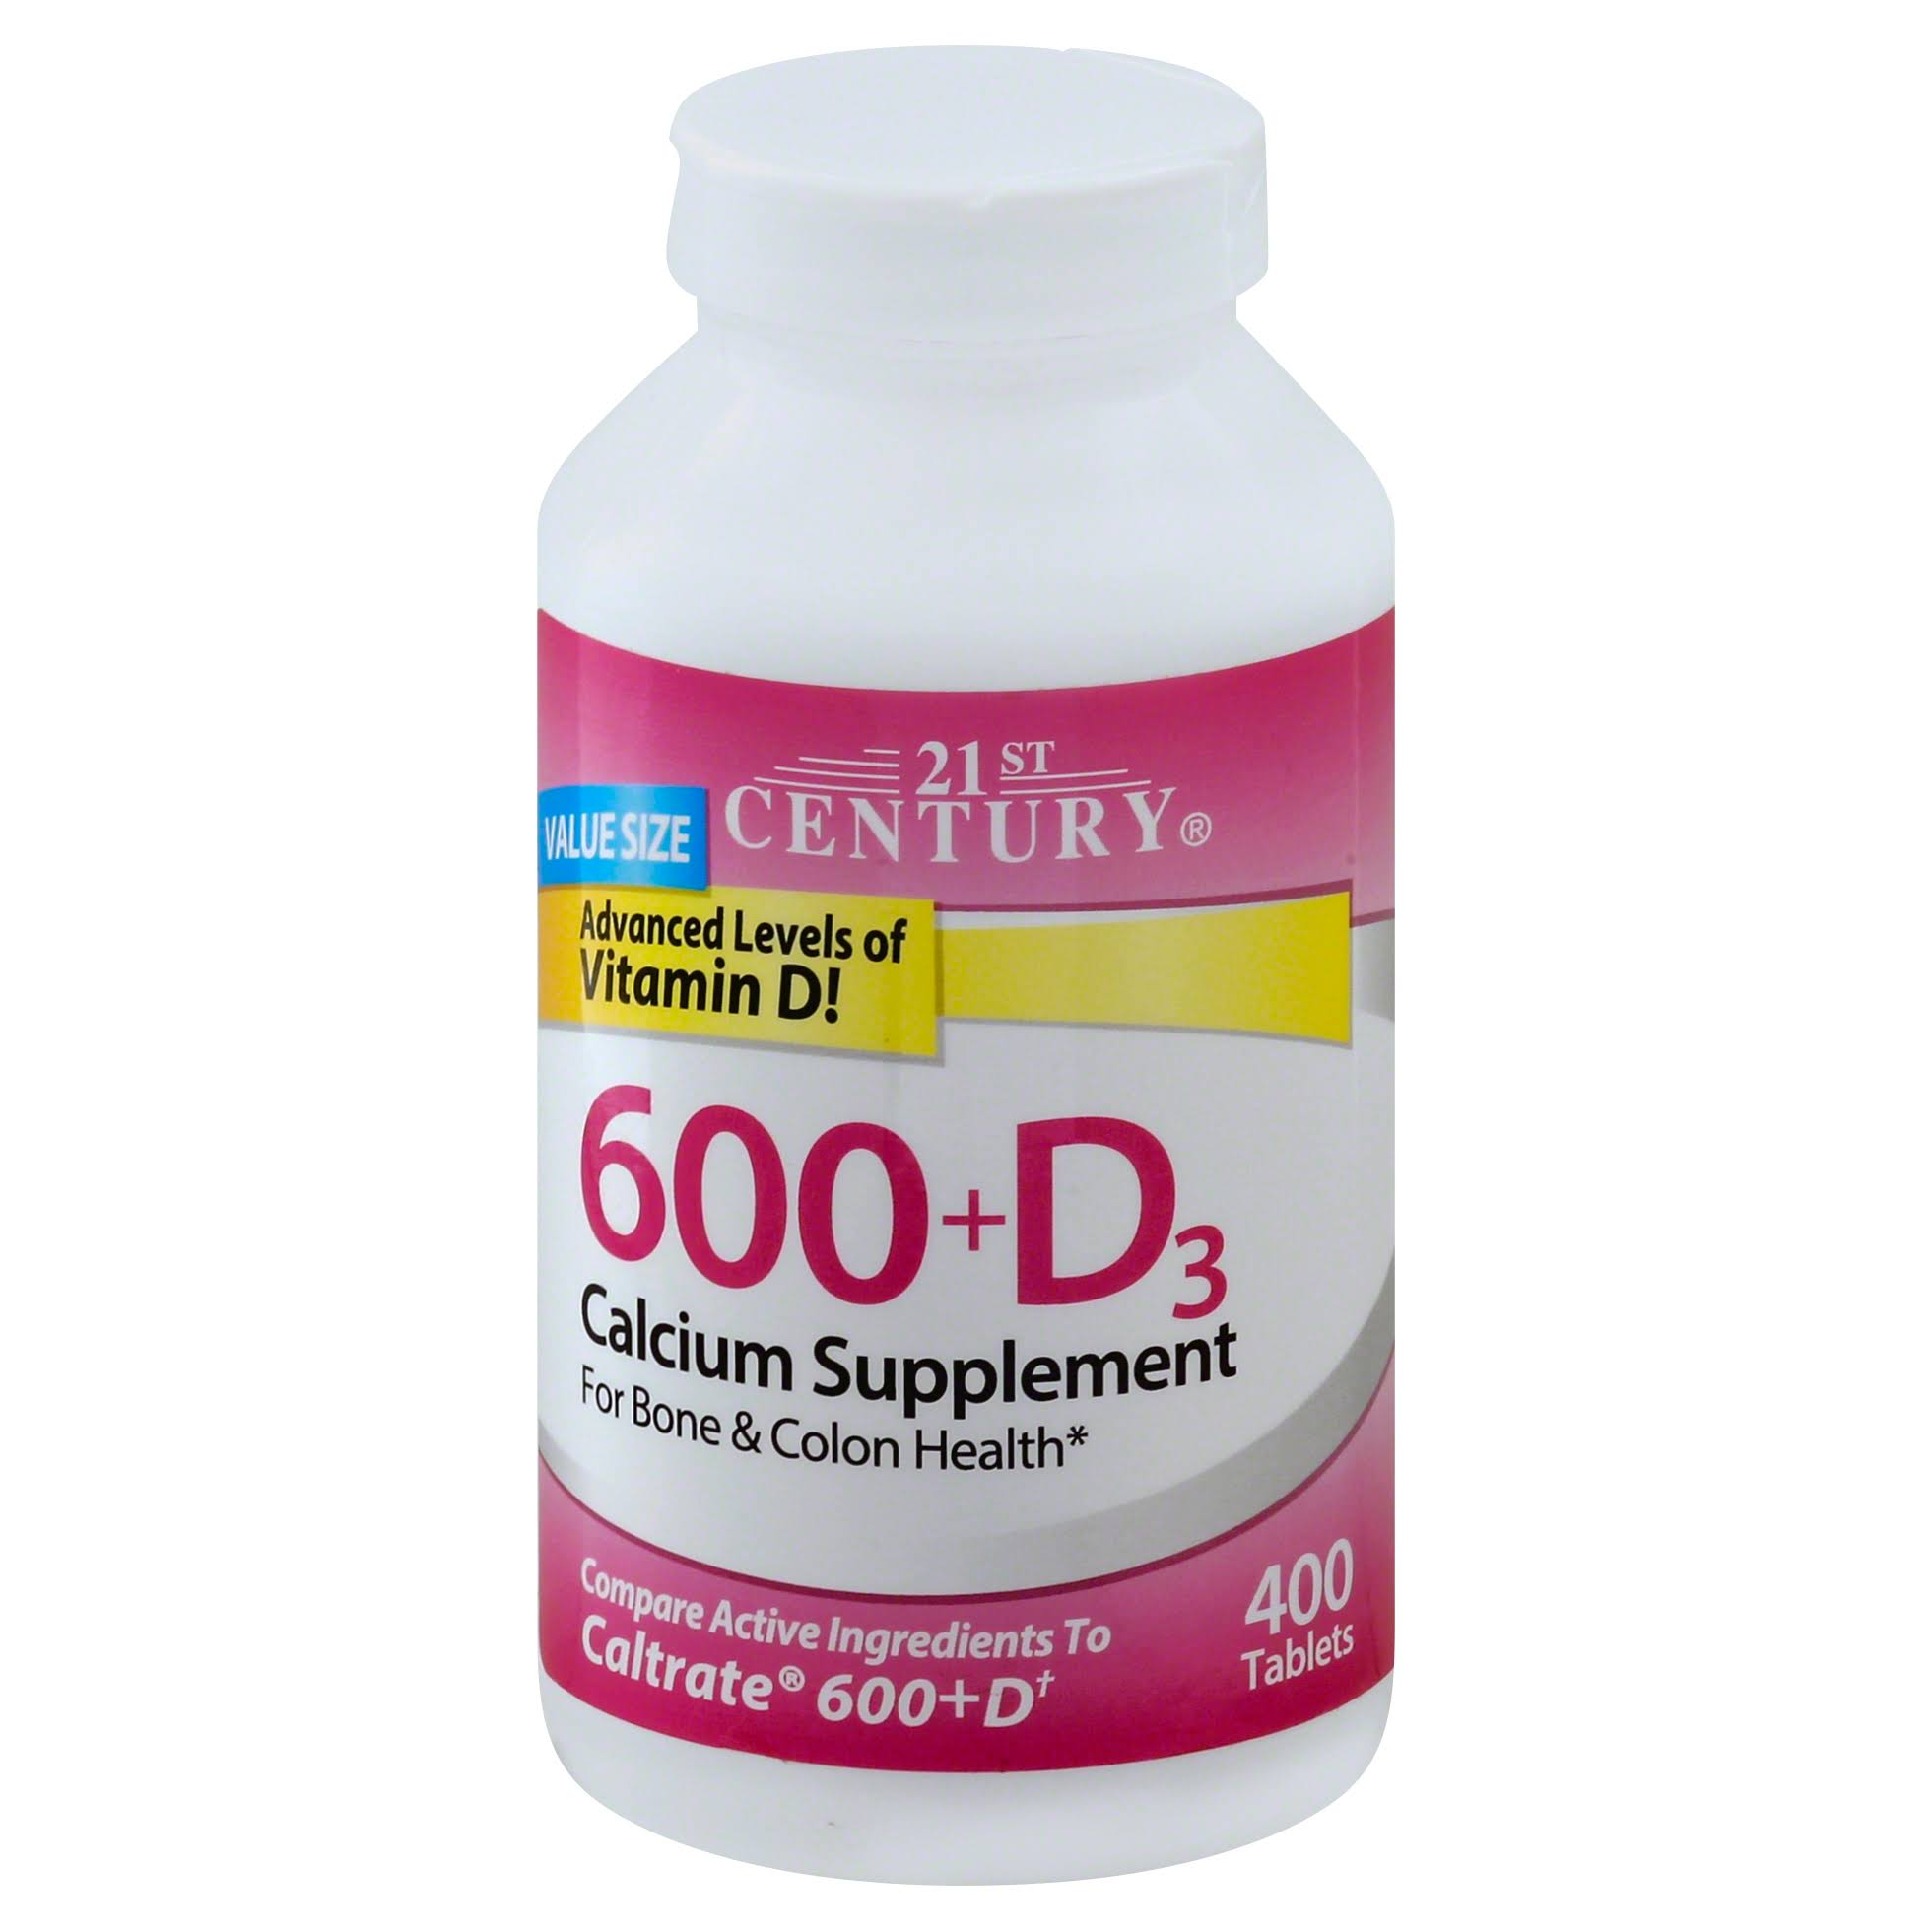 21st Century Calcium Plus D Supplement - 600mg, x400